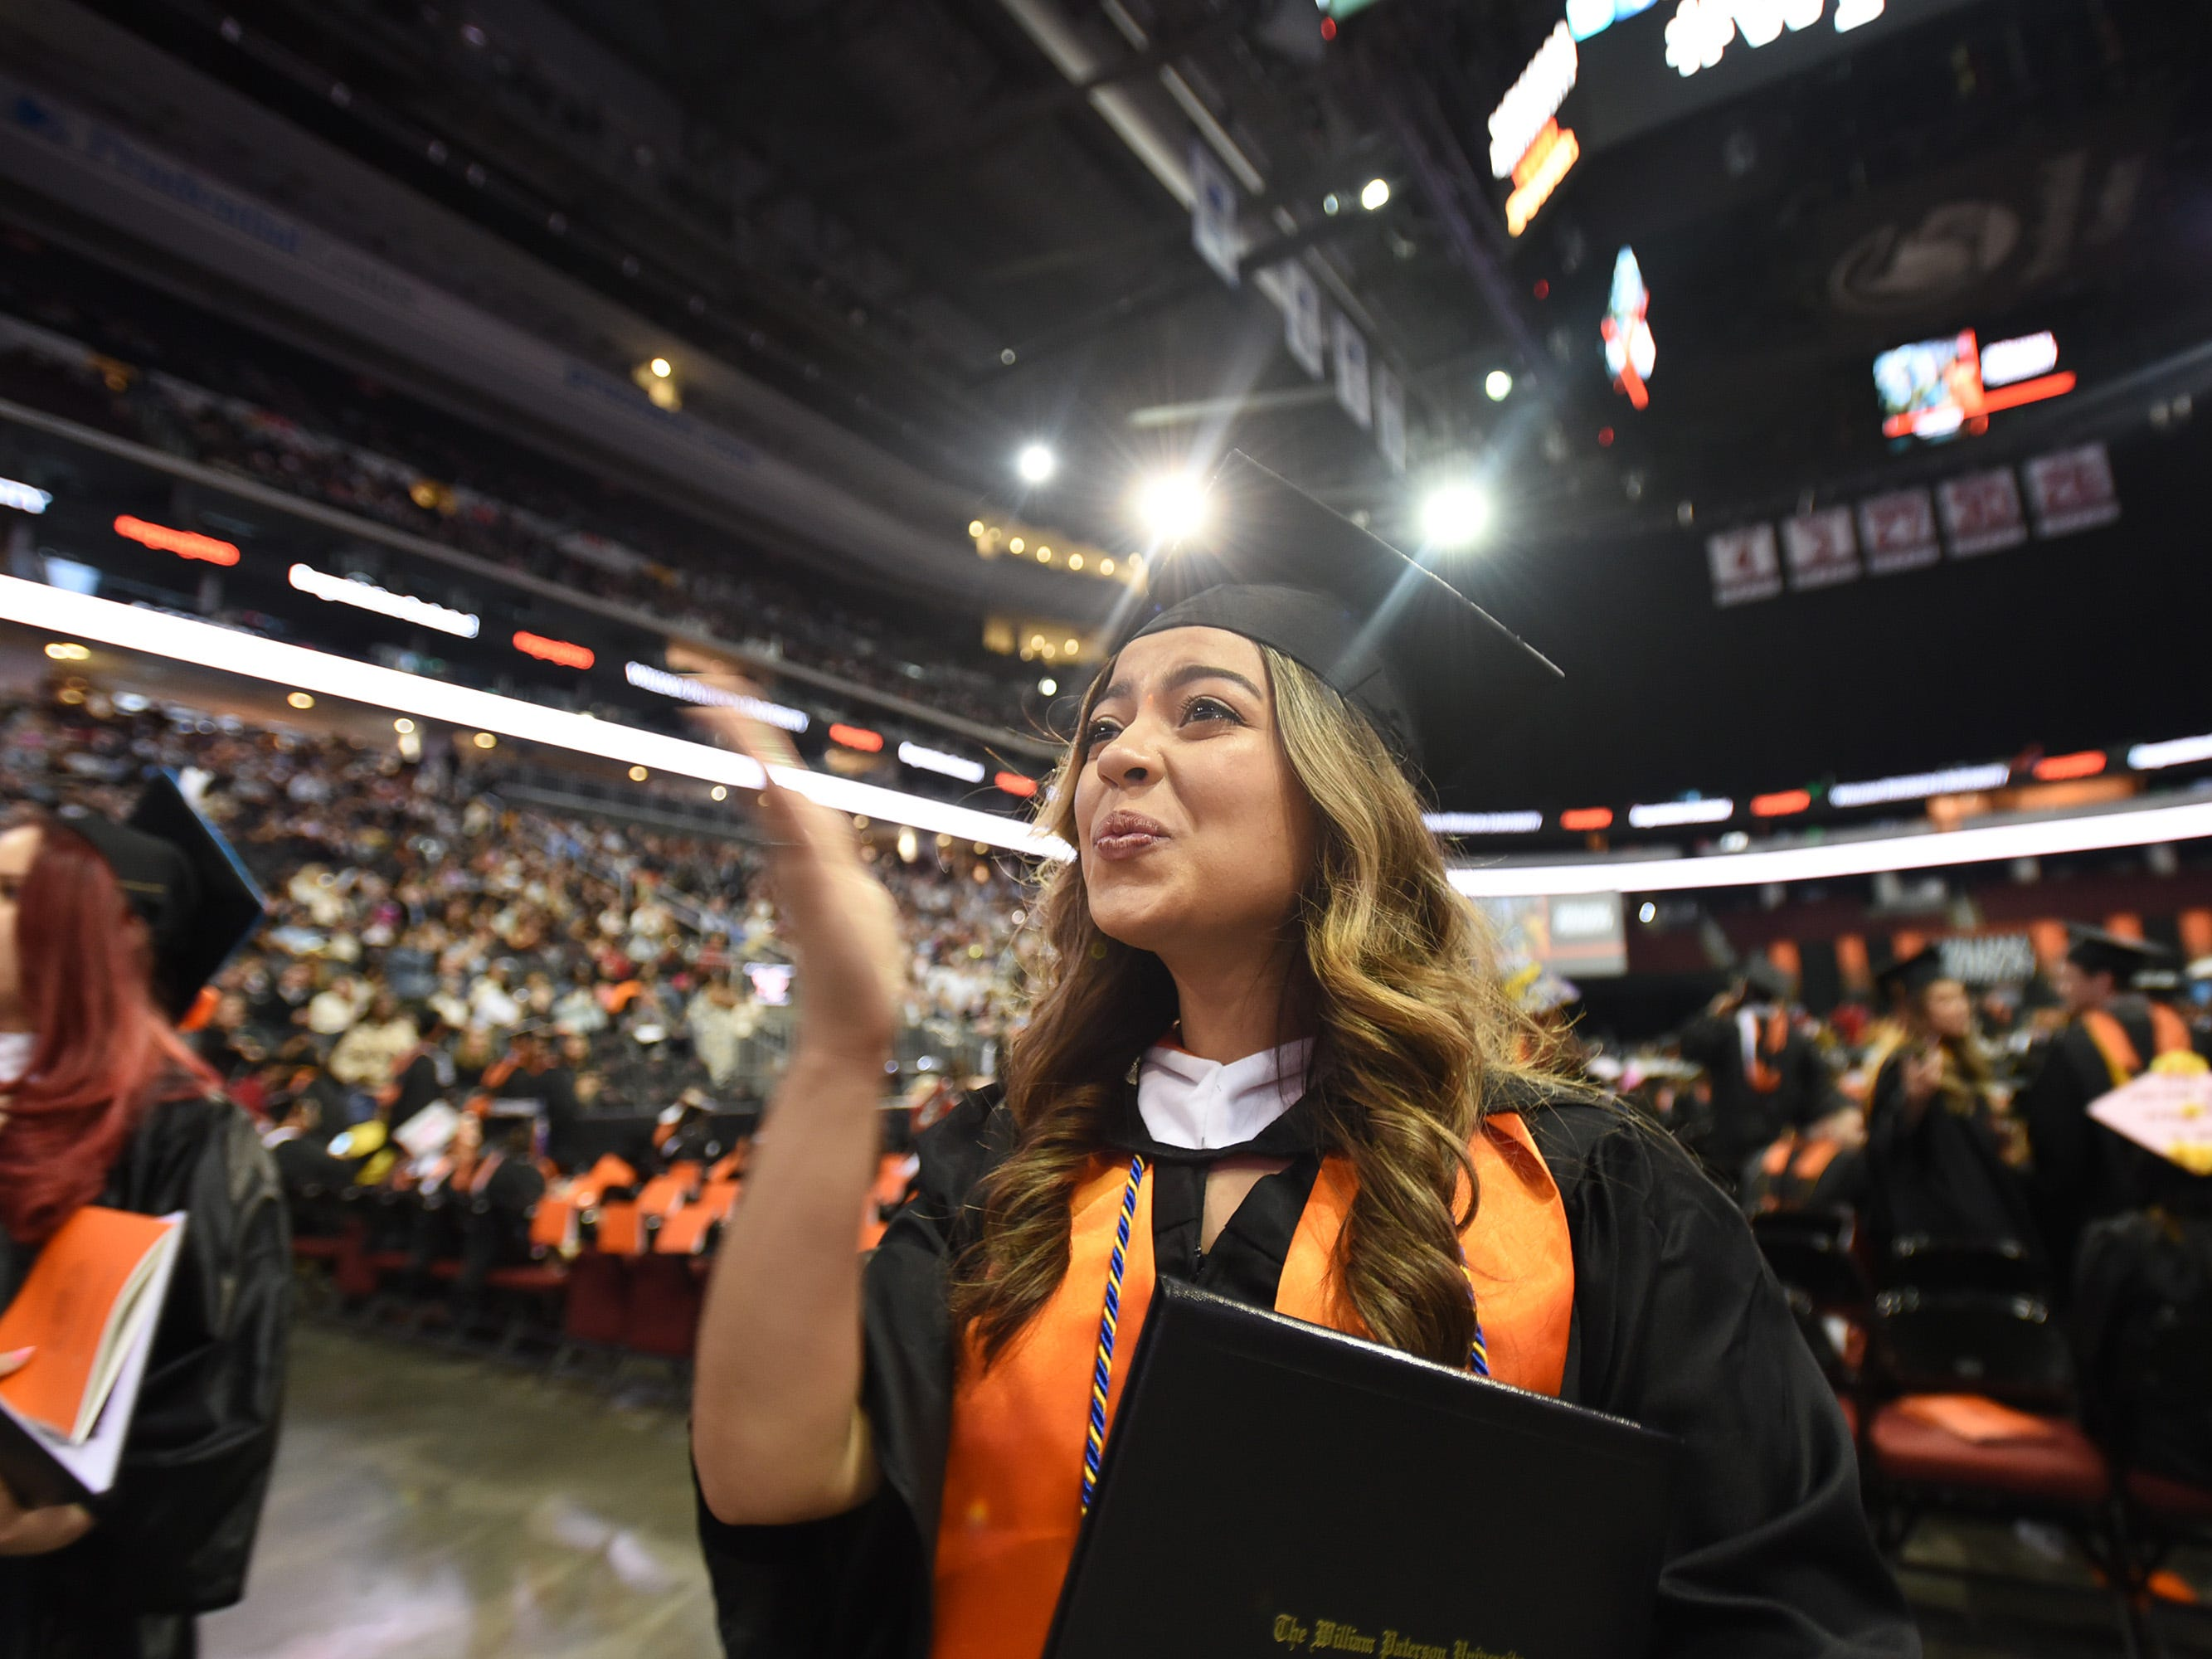 Tiffany Gonzalez of Paterson, Major in Psychology, blows a kiss after receiving her degree during the William Paterson University 2019 Commencement at the Prudential Center in Newark on 05/15/19.